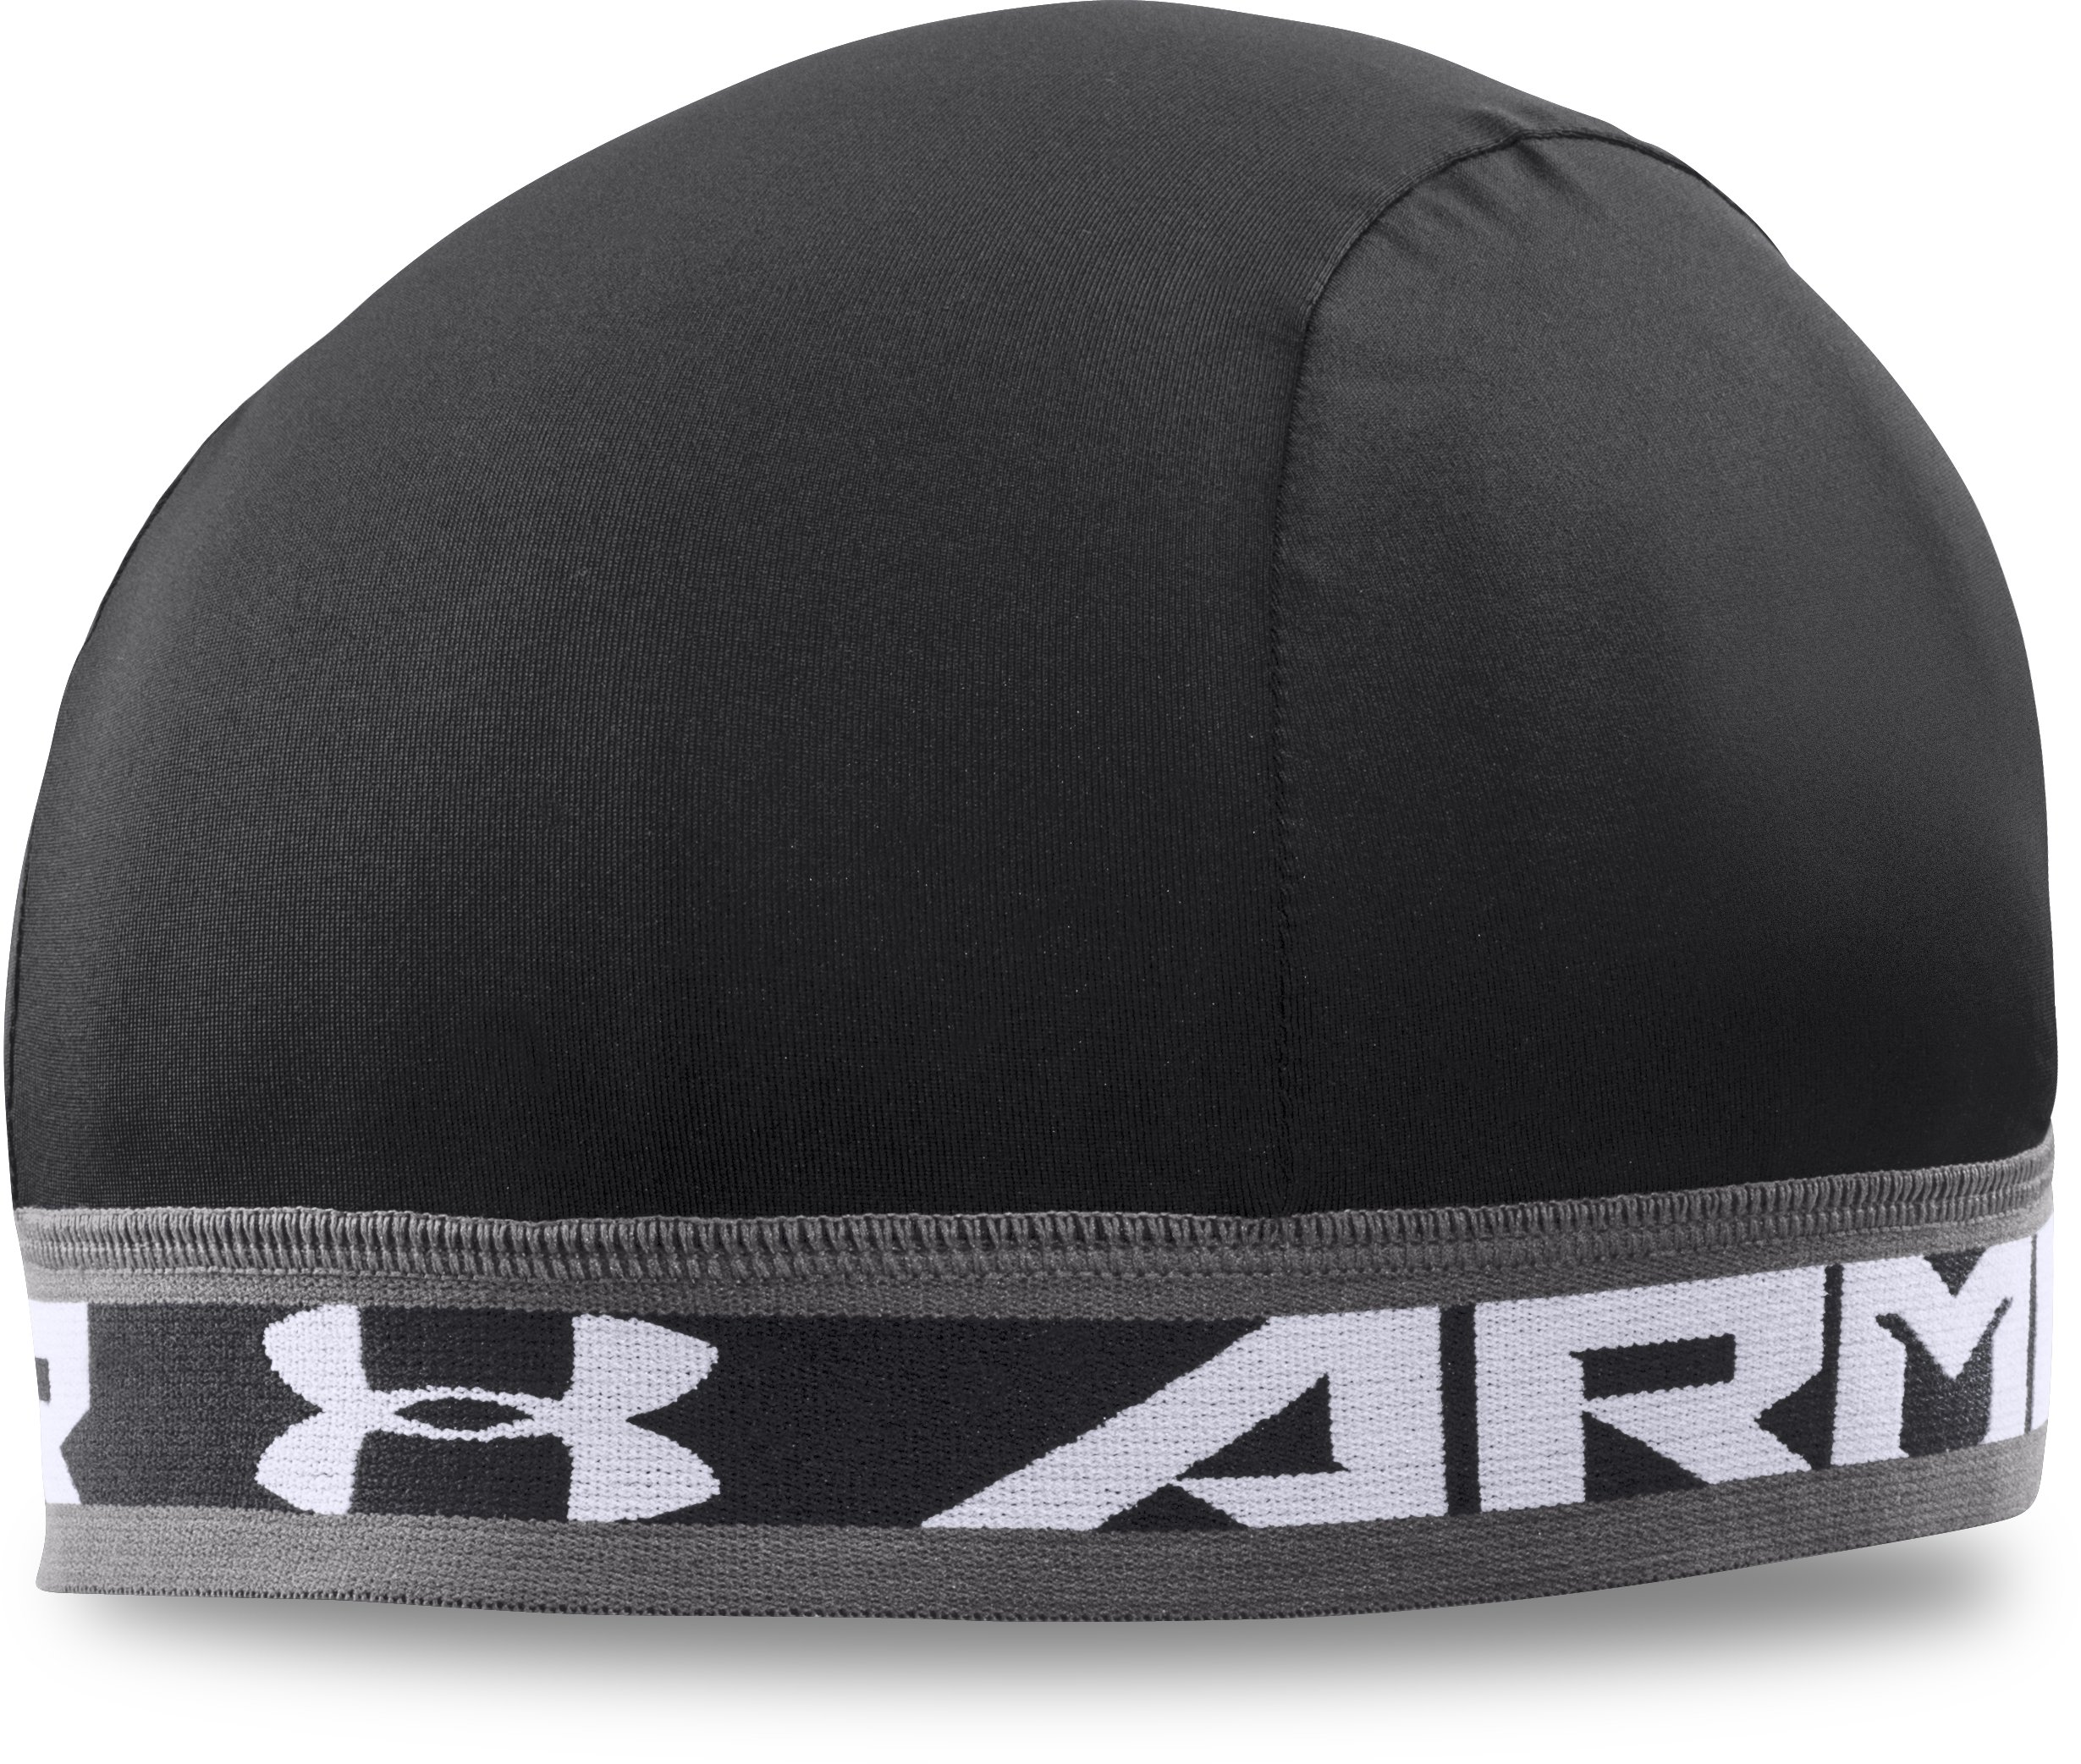 stripe beanies Men's UA Original Skull Cap Fits just right, fits over my ears to keep them warm and never does a drop of sweat get into my eyes....Used for under my hard hat at work     Works great....great customer service